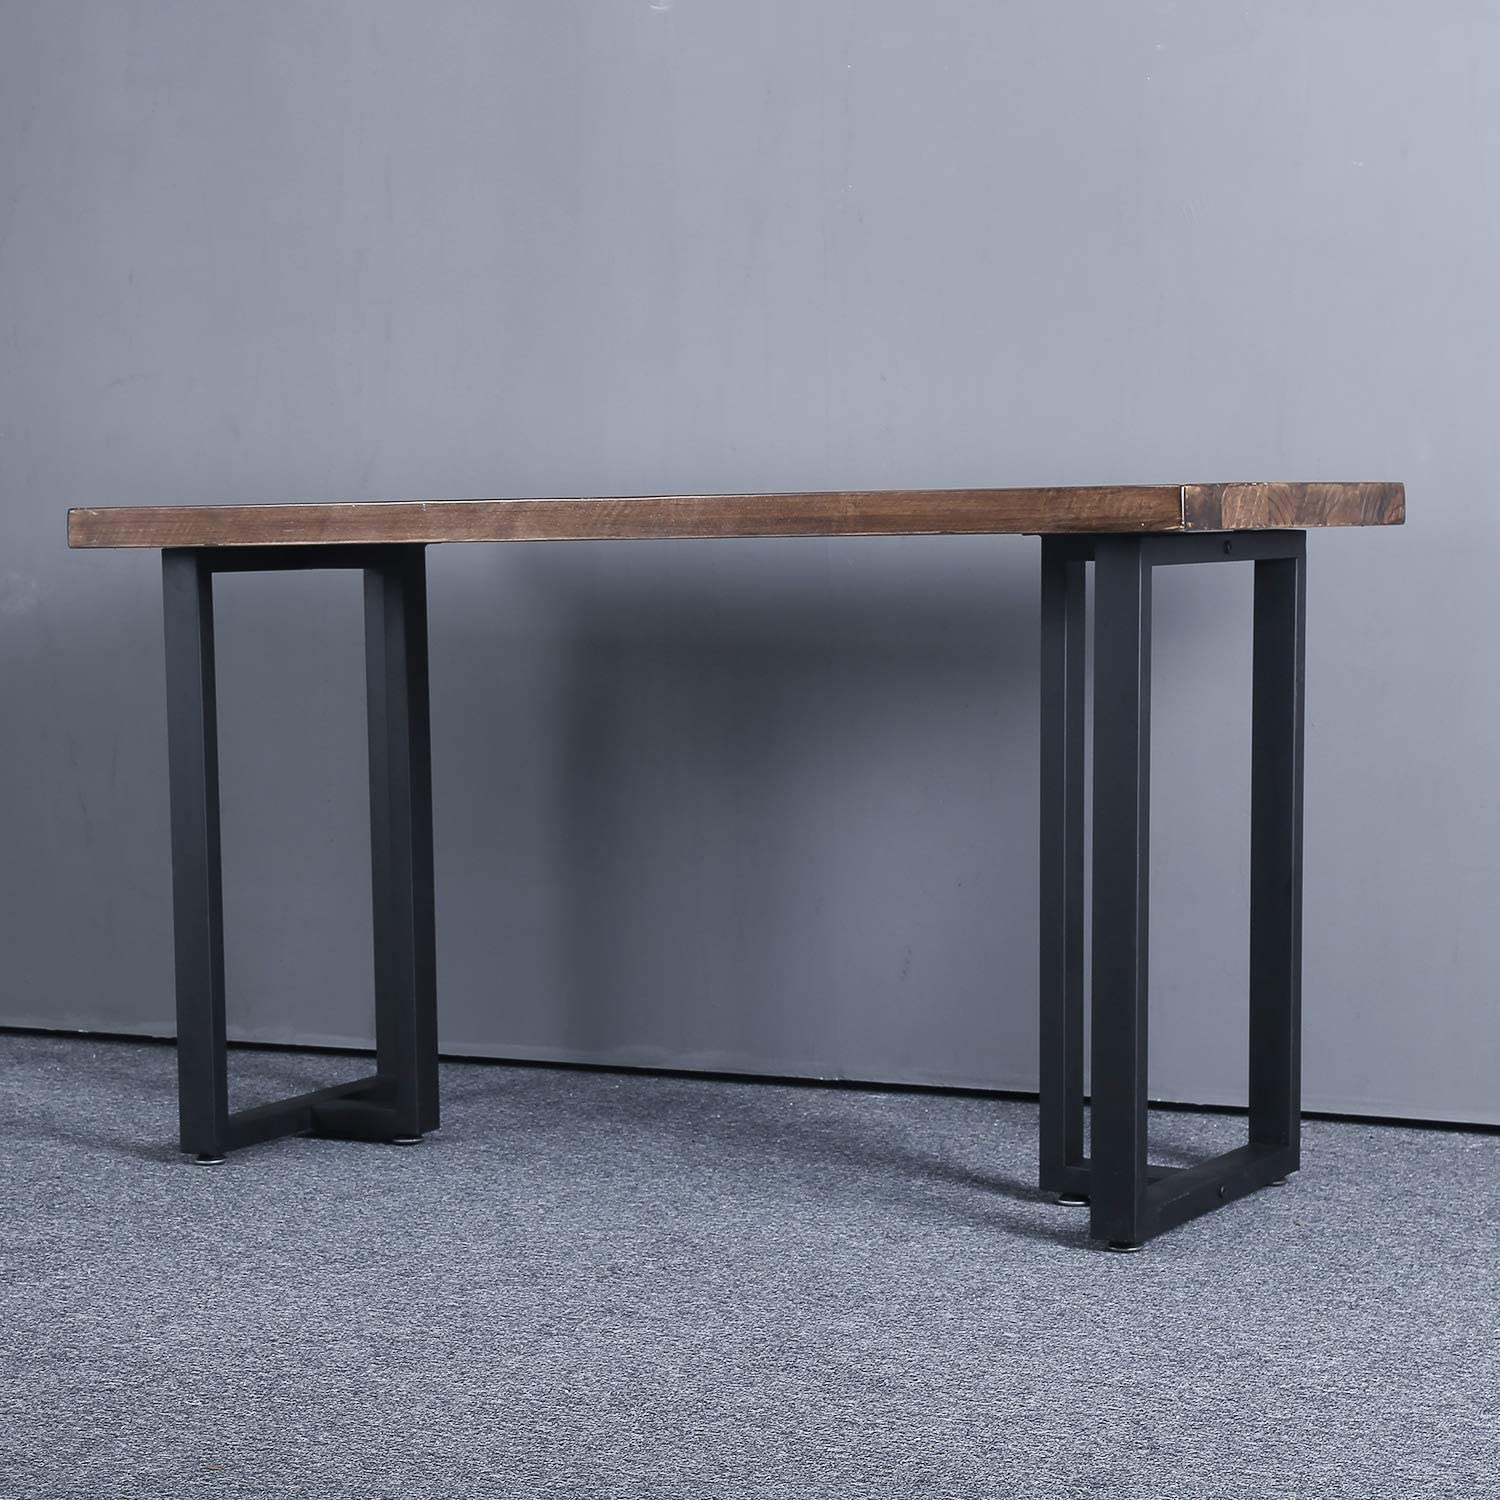 Max 69% OFF Super sale period limited 2 Pcs Metal Furniture Legs Black Dining Industrial Table Ca